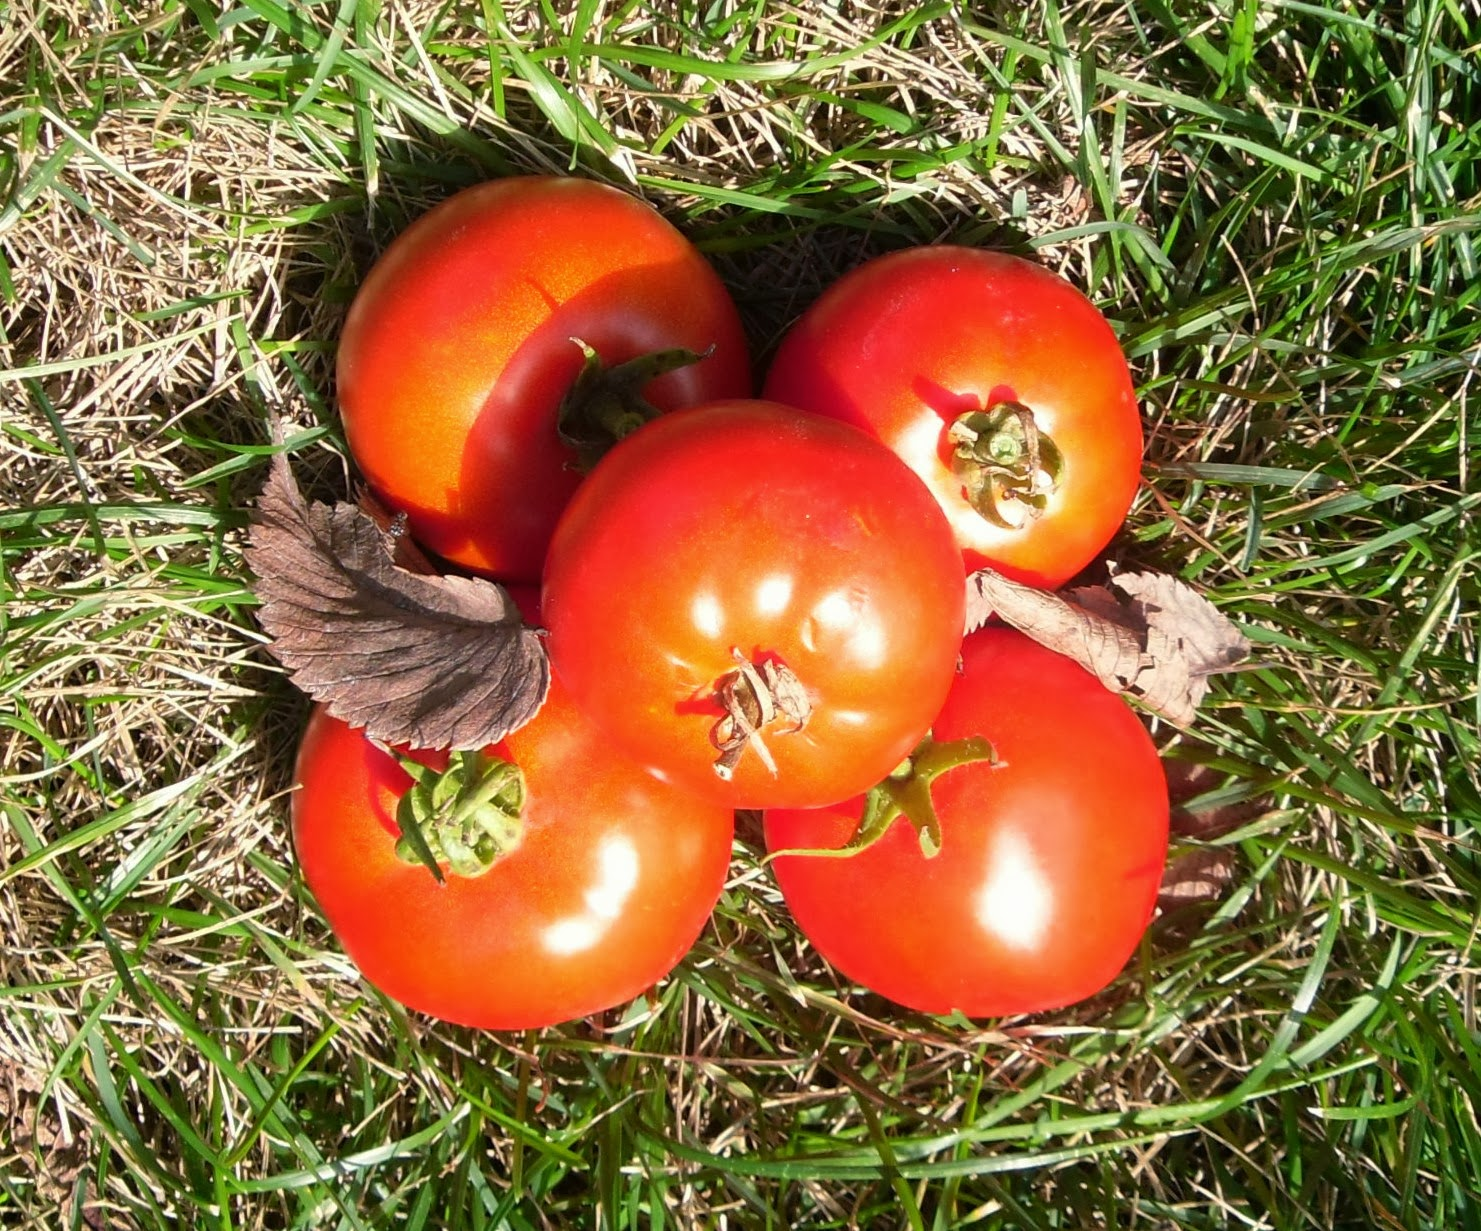 Fresh juicy red tomatoes